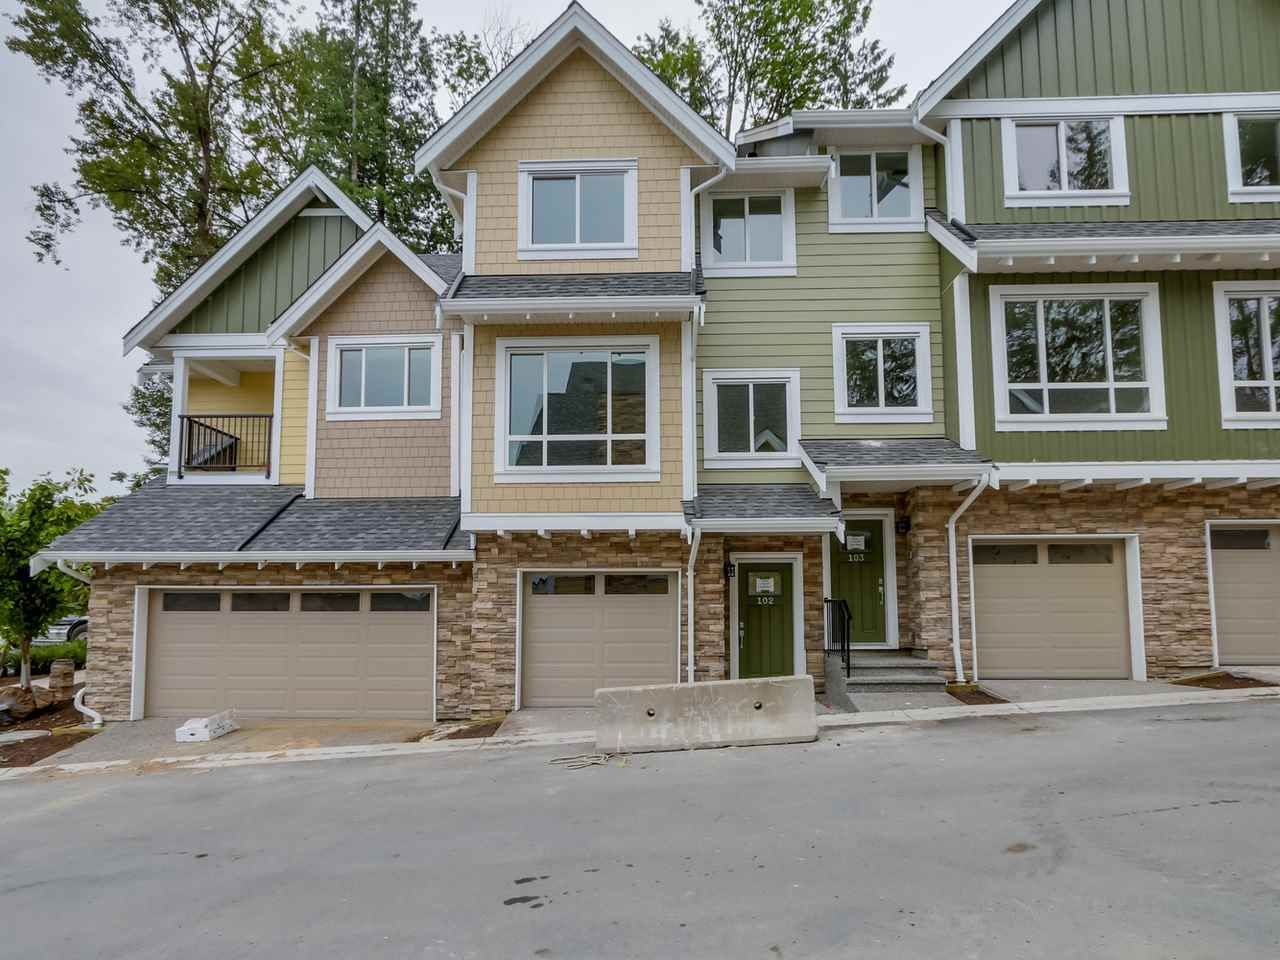 """Main Photo: 302 1405 DAYTON Street in Coquitlam: Westwood Plateau Townhouse for sale in """"ERICA"""" : MLS®# R2127900"""